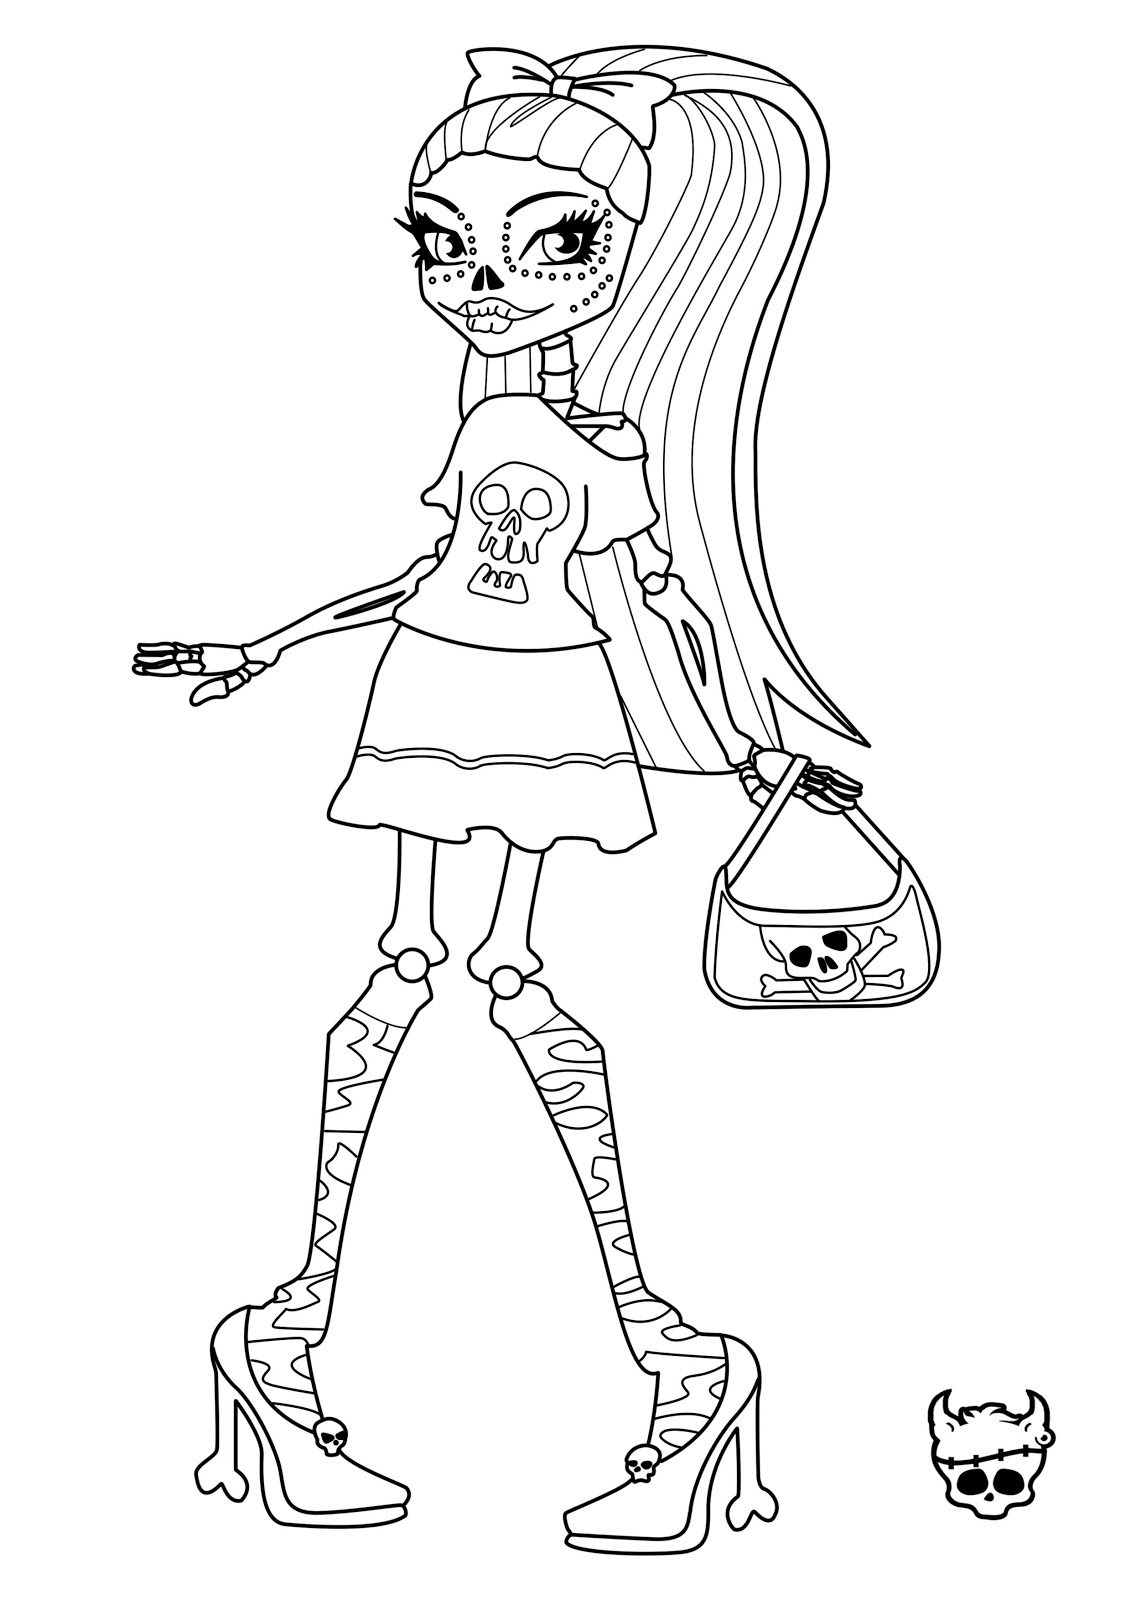 monster high free printable coloring pages monster high coloring pages to print at getdrawings free coloring high printable free monster pages